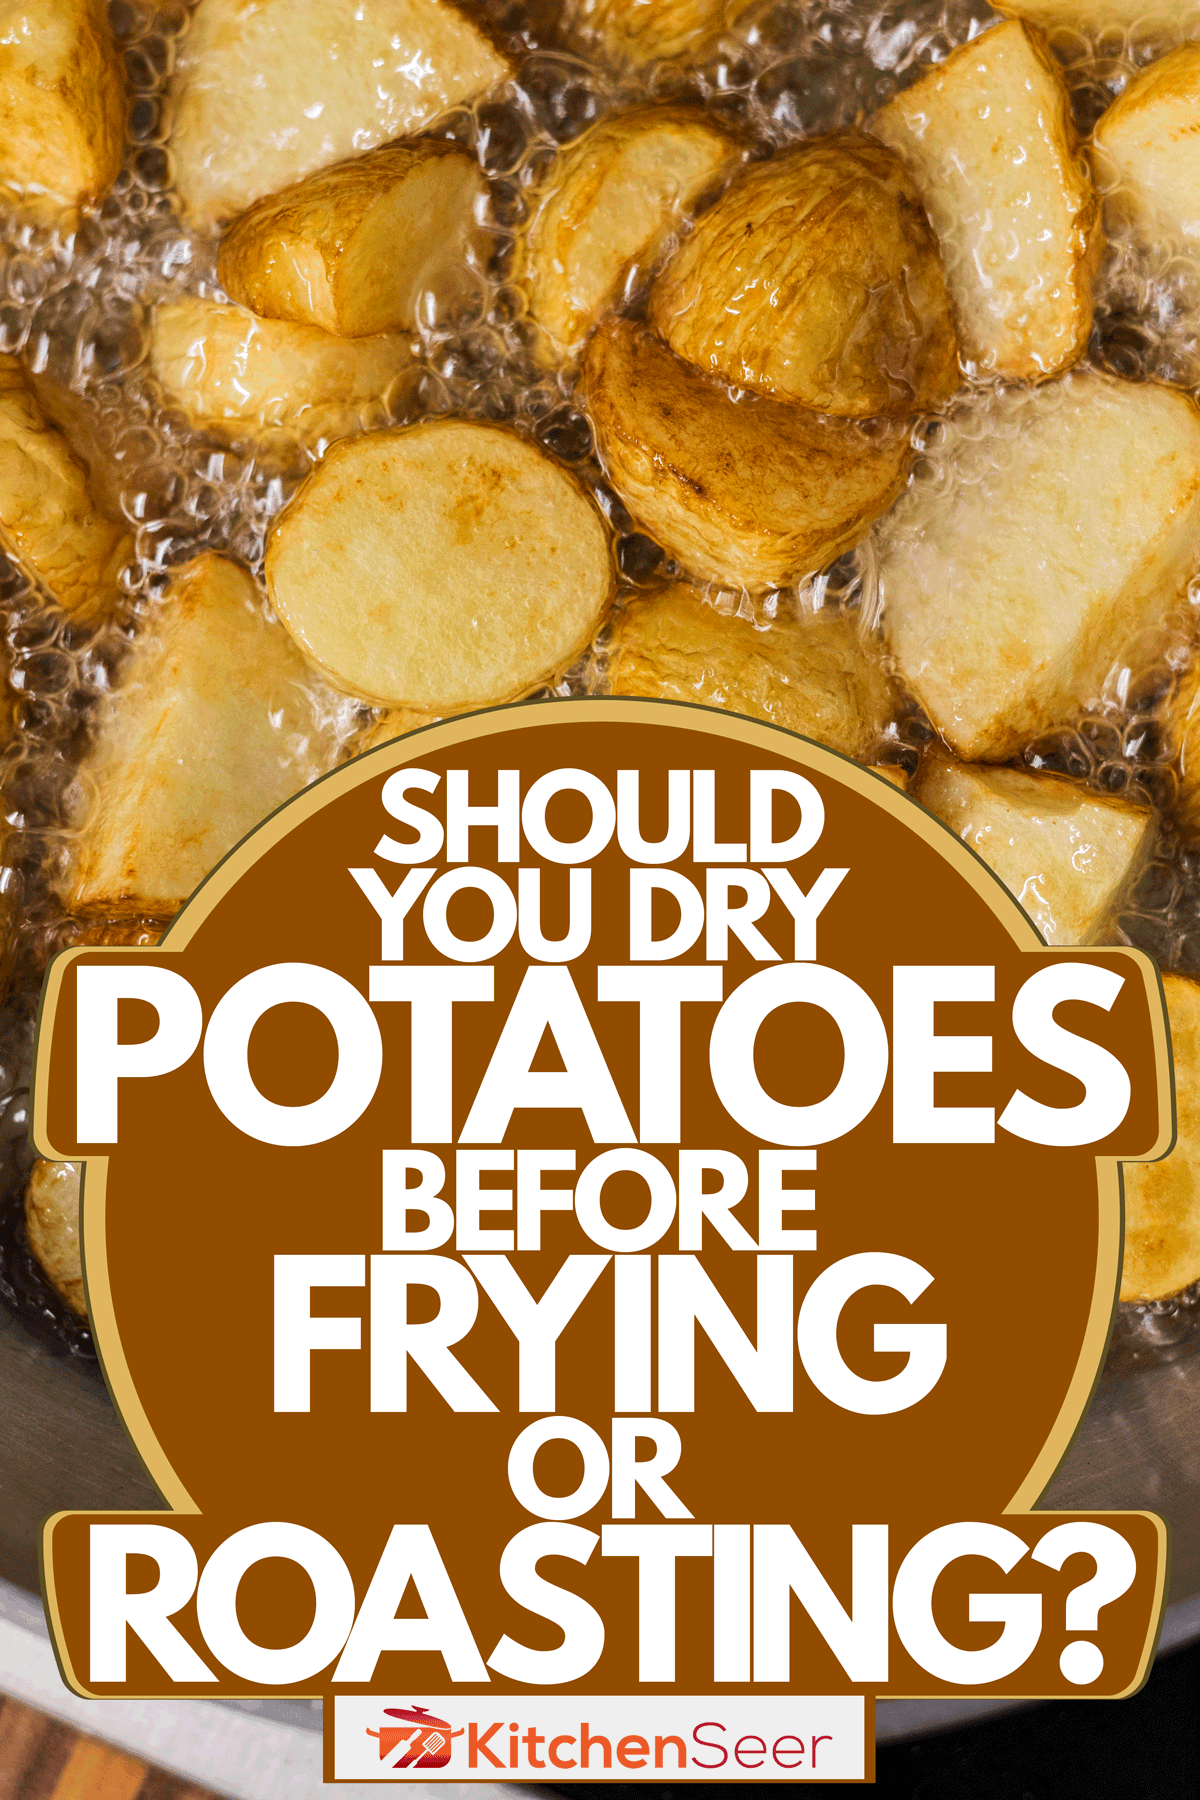 A sauce pan filled with deep fried sliced potatoes, Should You Dry Potatoes Before Frying Or Roasting?